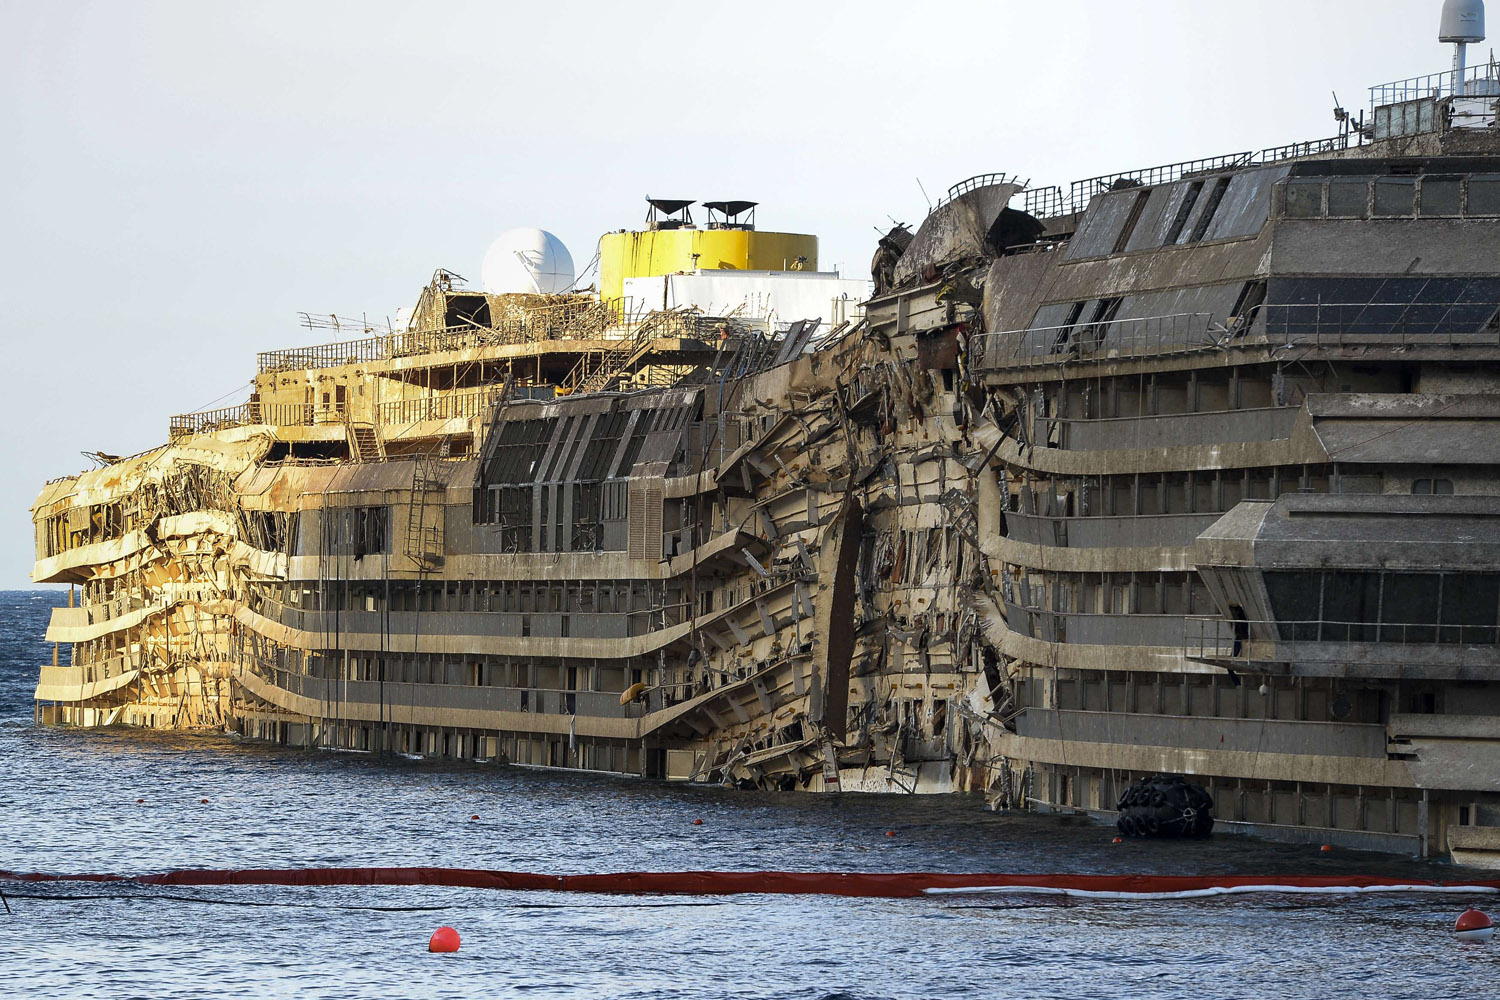 Sept. 17, 2013. A view of the wreck of Italy's Costa Concordia cruise ship after emerging from water near the harbour of Giglio Porto, Italy.